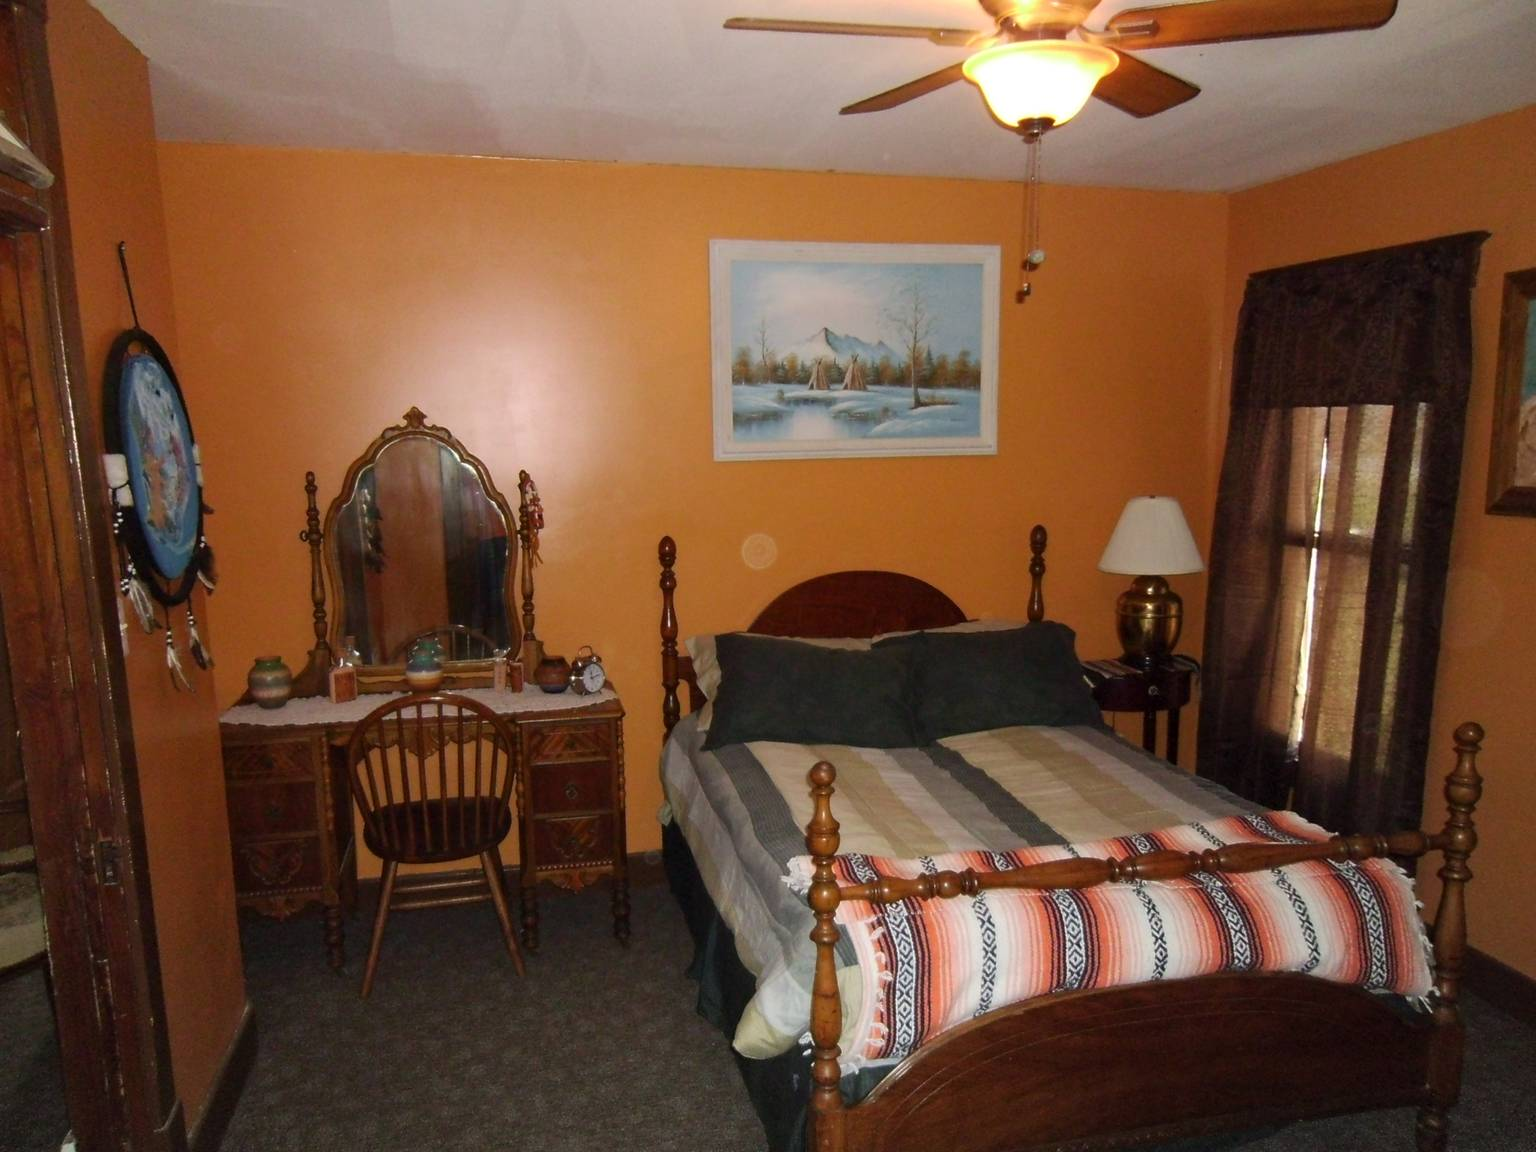 A bedroom with a bed and a chair in a room at Loess Hills Bed and Breakfast.